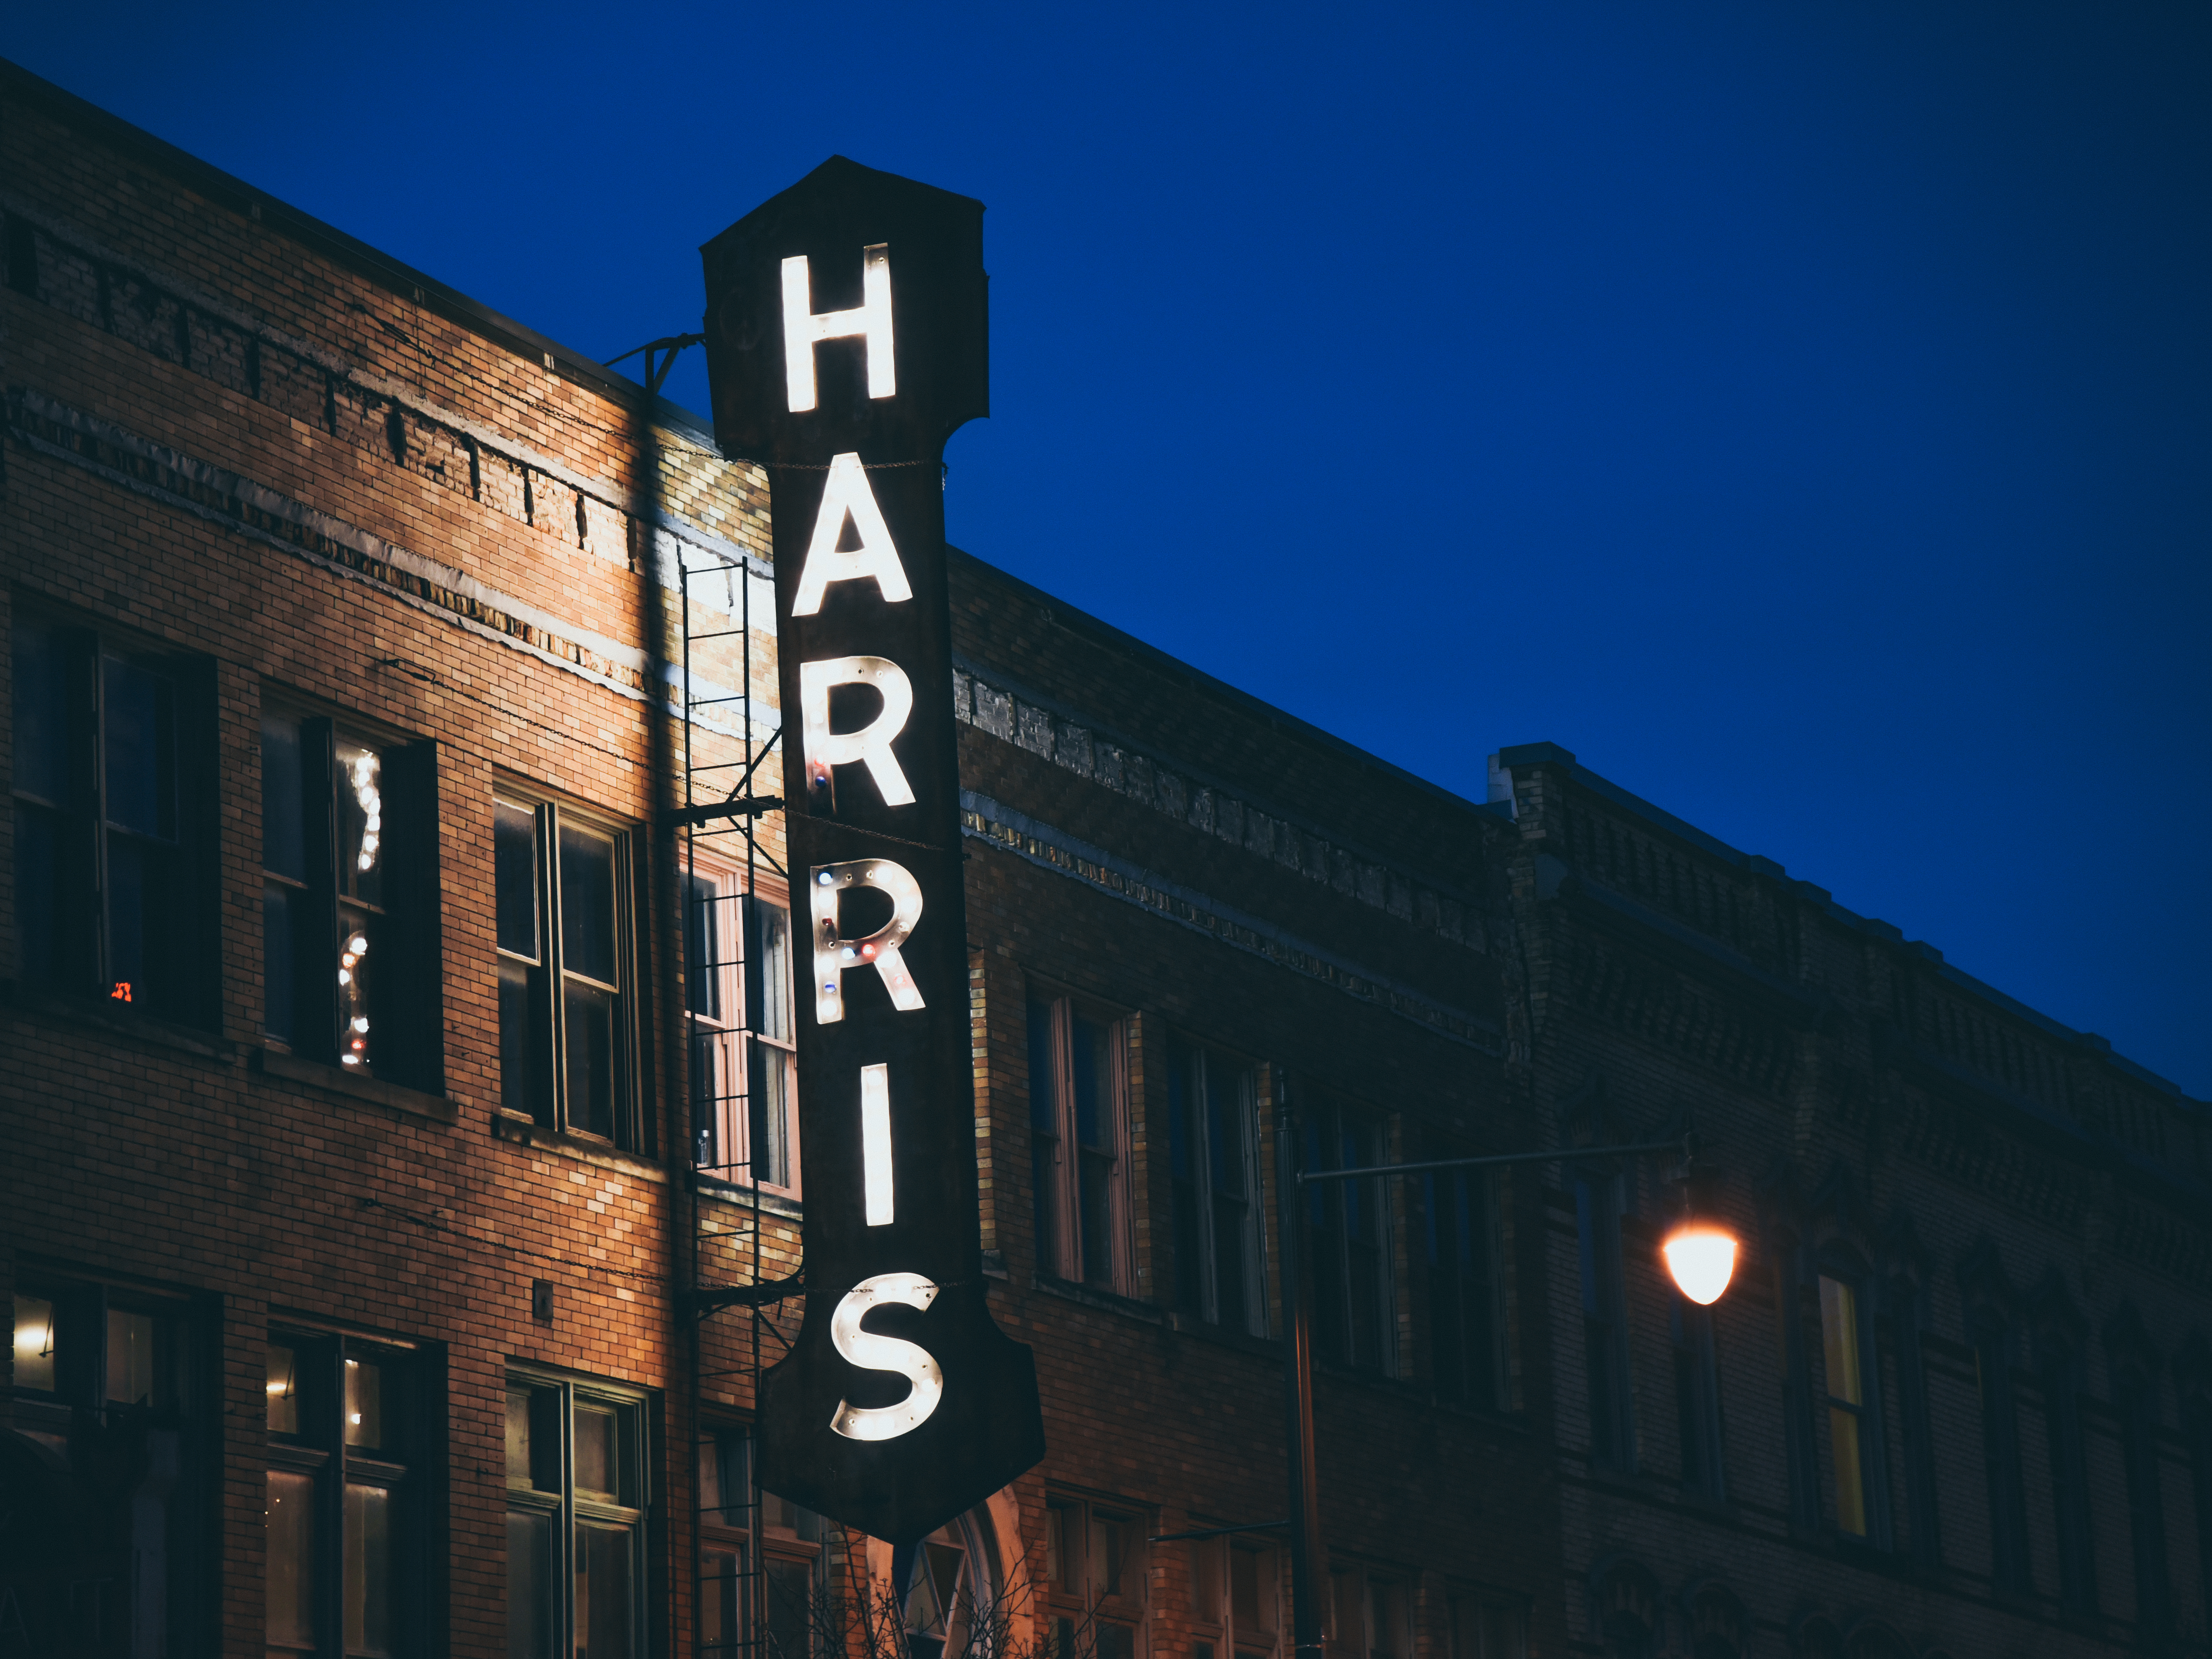 harris building sign lit up at night